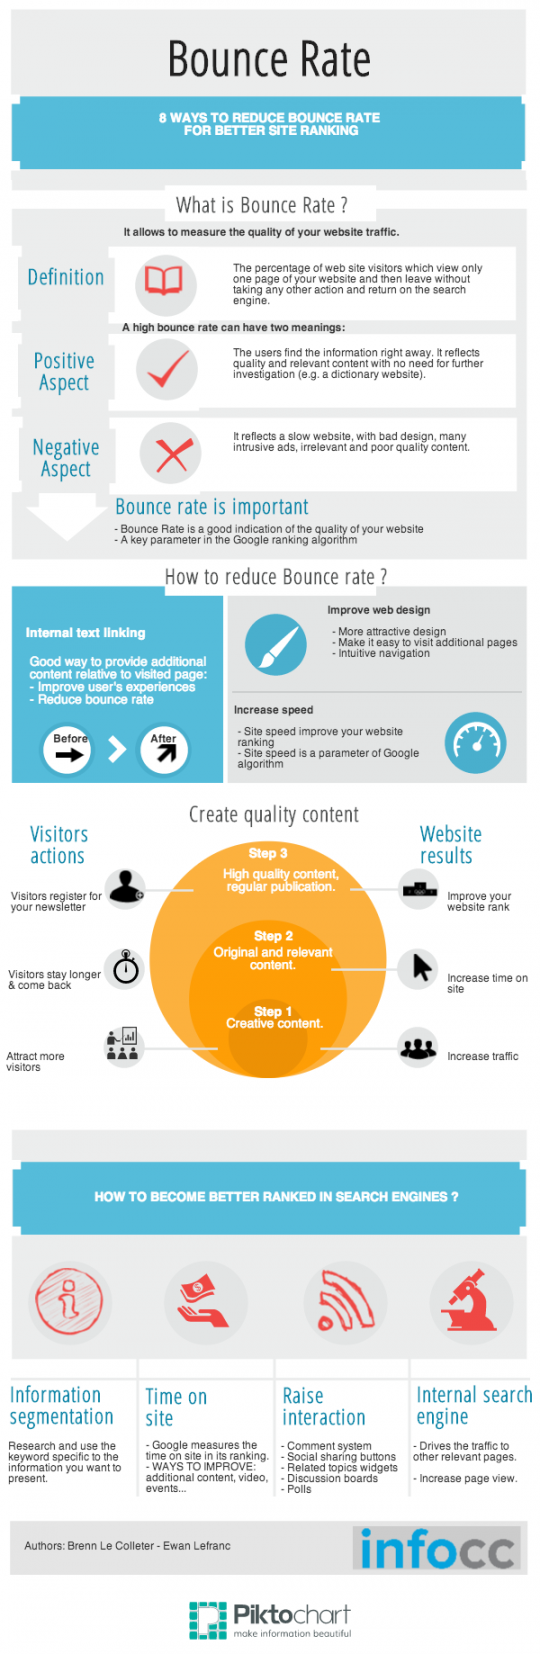 8 Ways to Reduce Website Bounce Rate